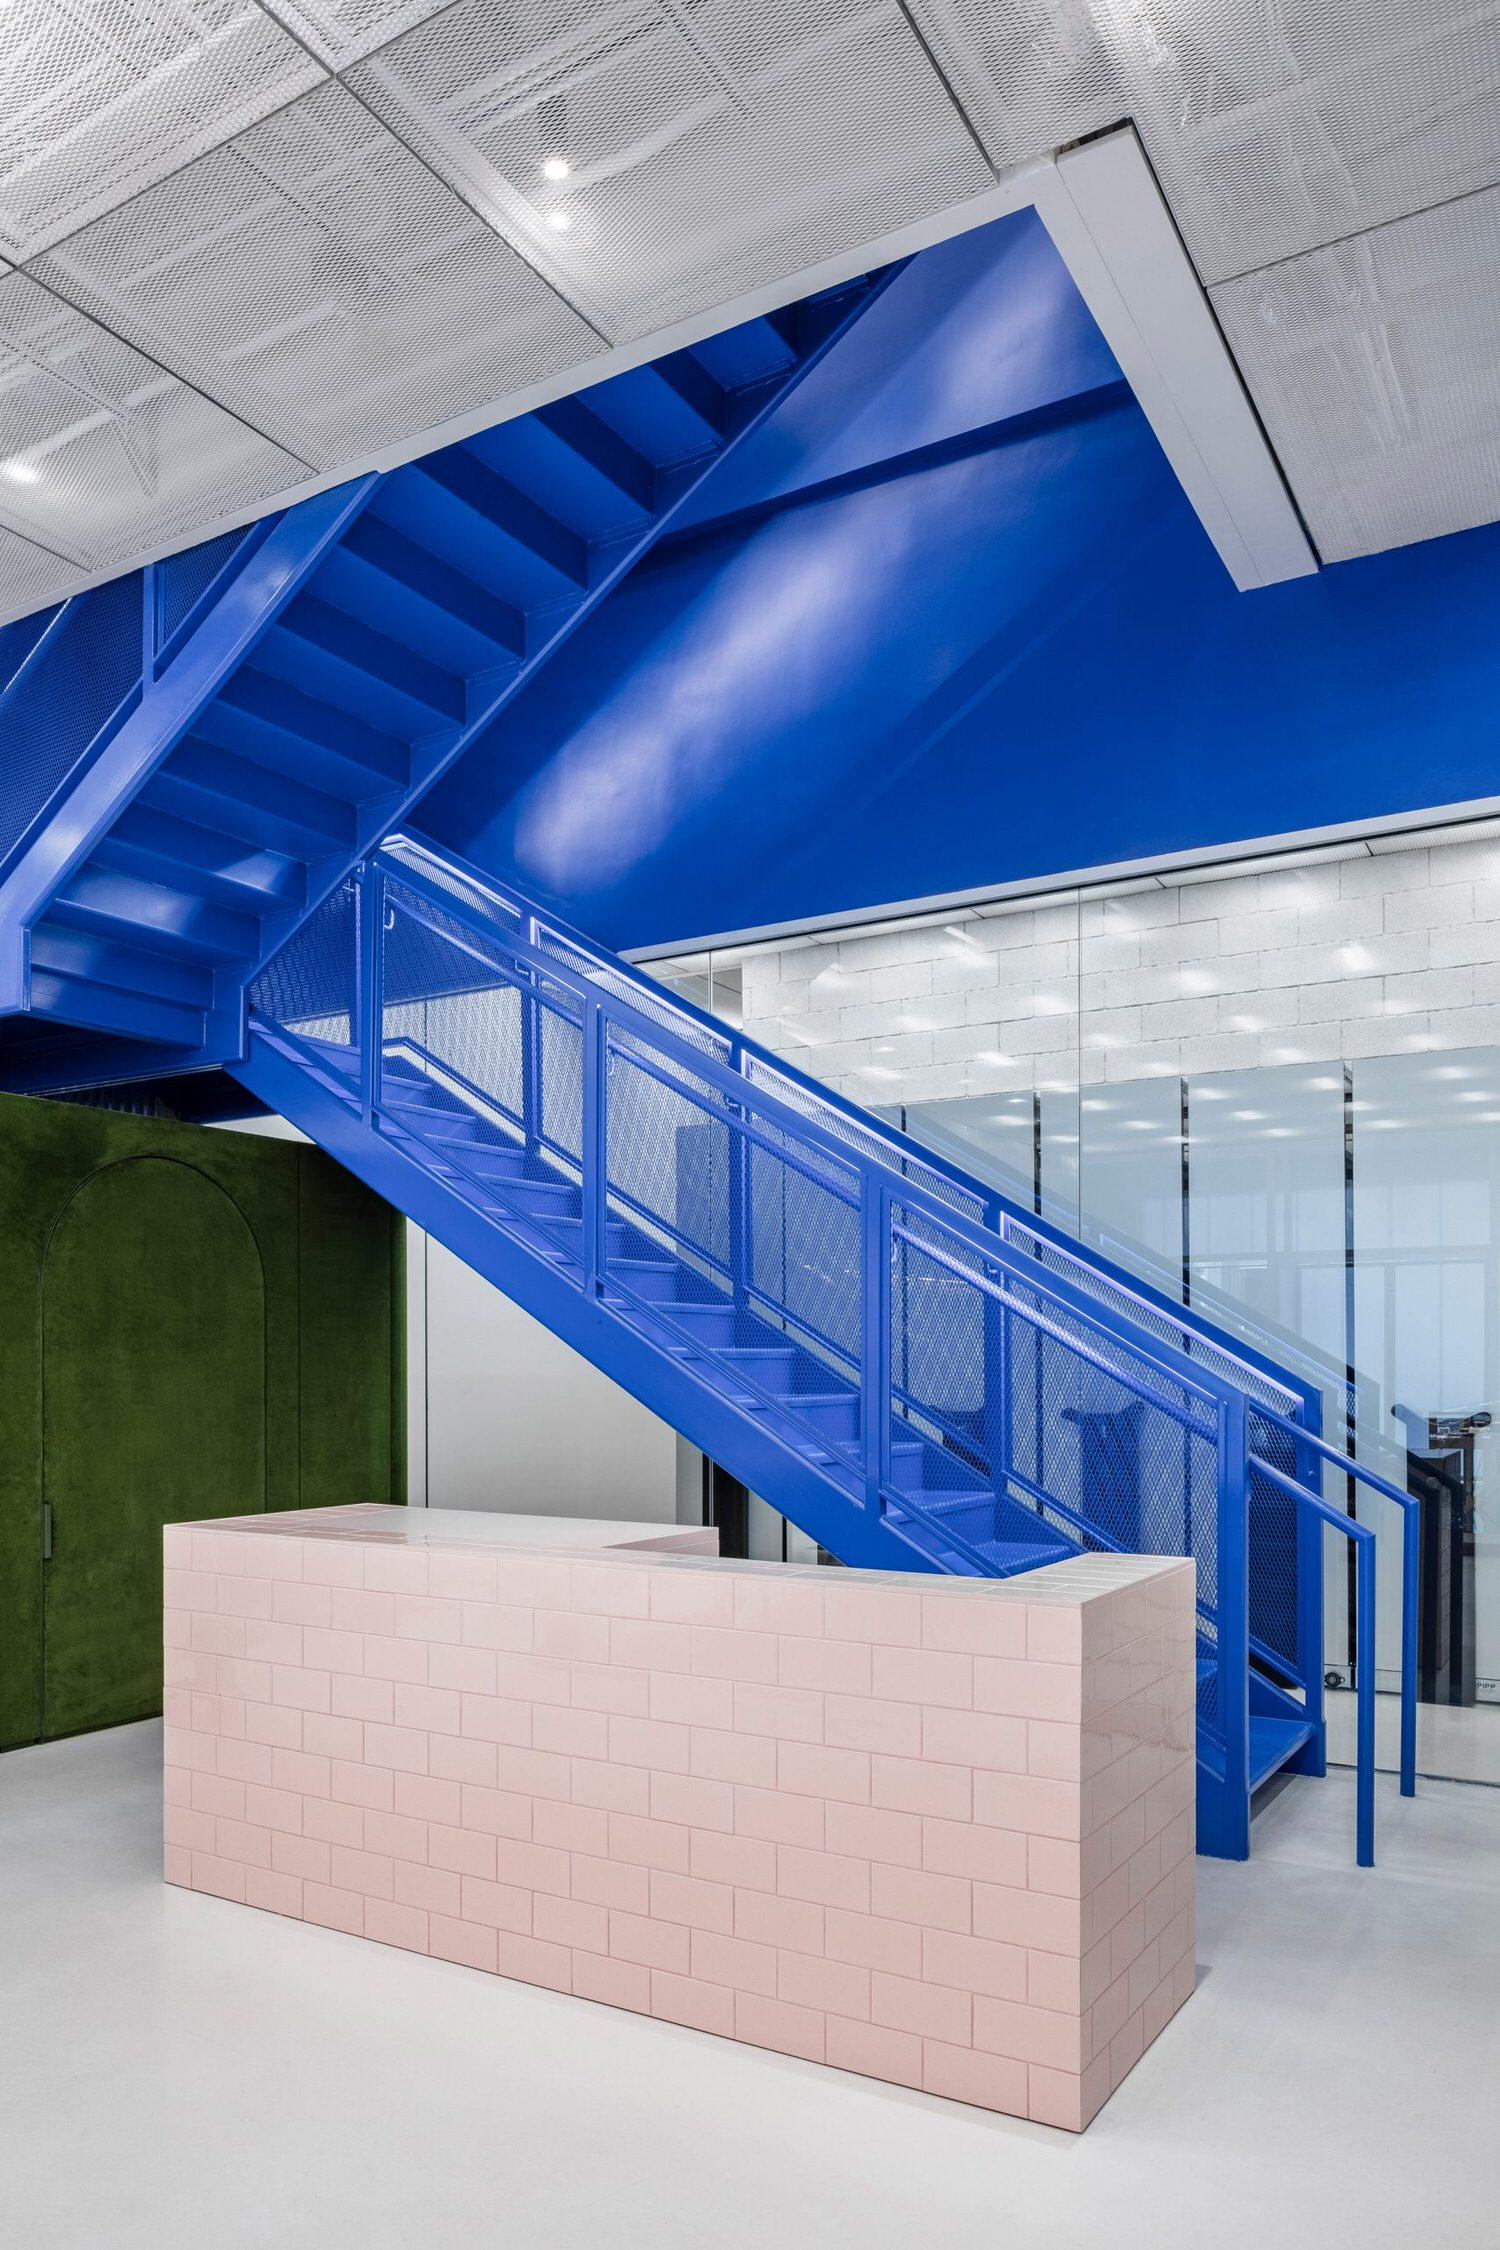 Virgil Abloh's Miami Off-White™ Flexible Flagship Store Designed with AMO.